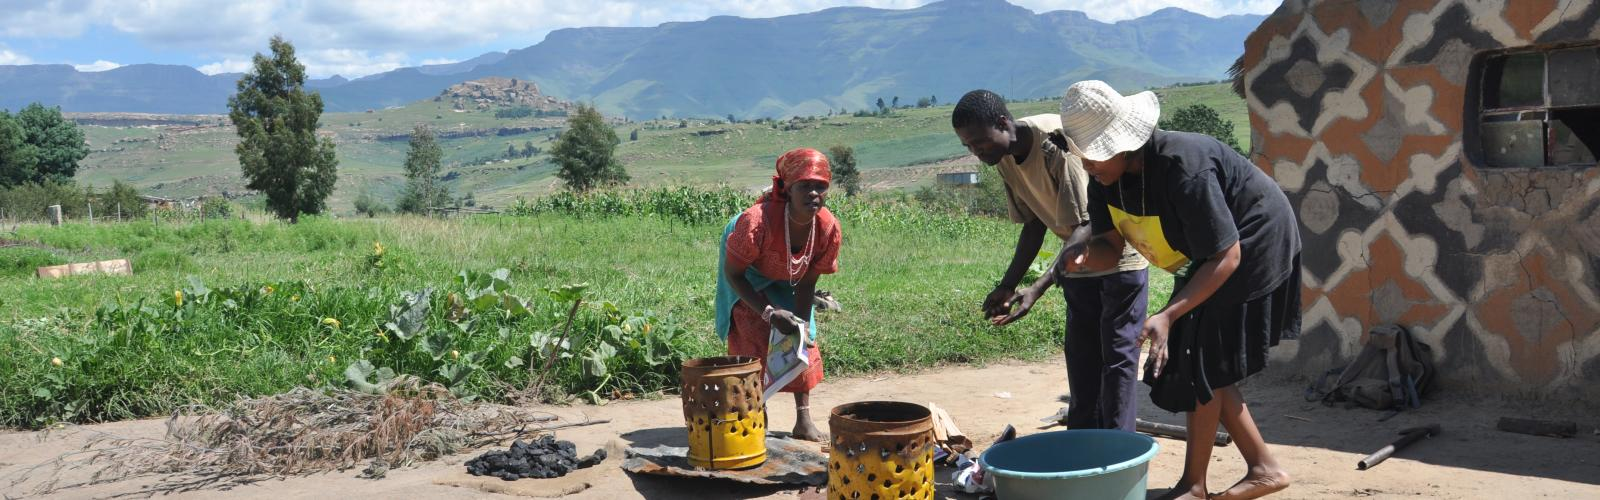 Basa Magogo cooking in South Africa